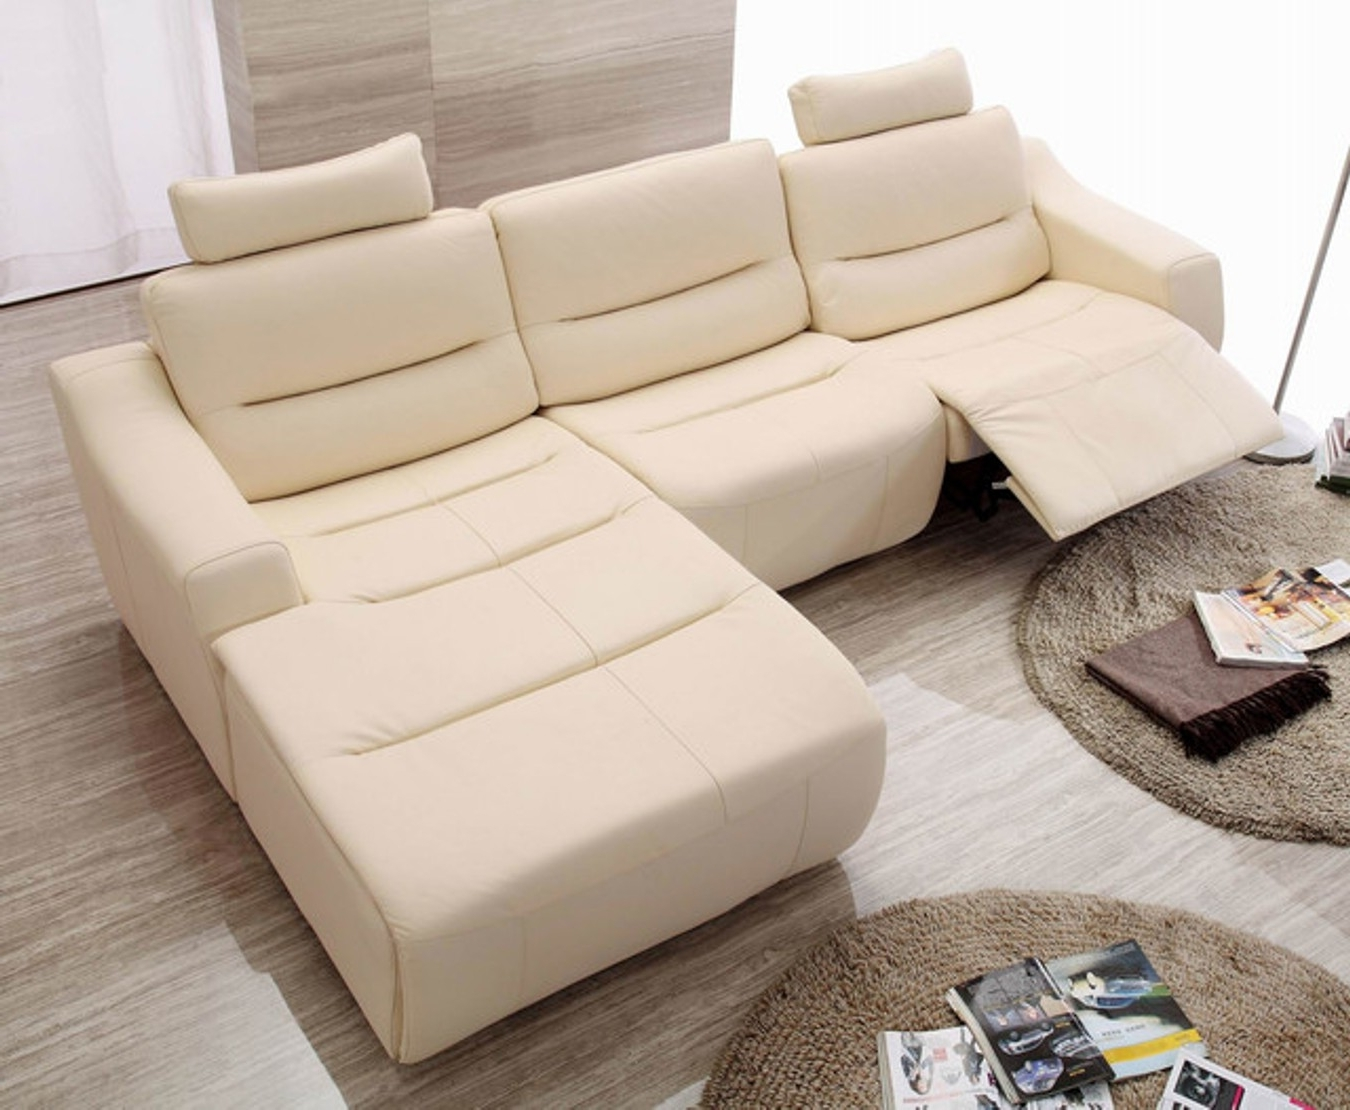 Sectional Sofas With Recliners For Small Spaces – Hotelsbacau With Most Recently Released Sectional Sofas With Recliners For Small Spaces (View 9 of 15)